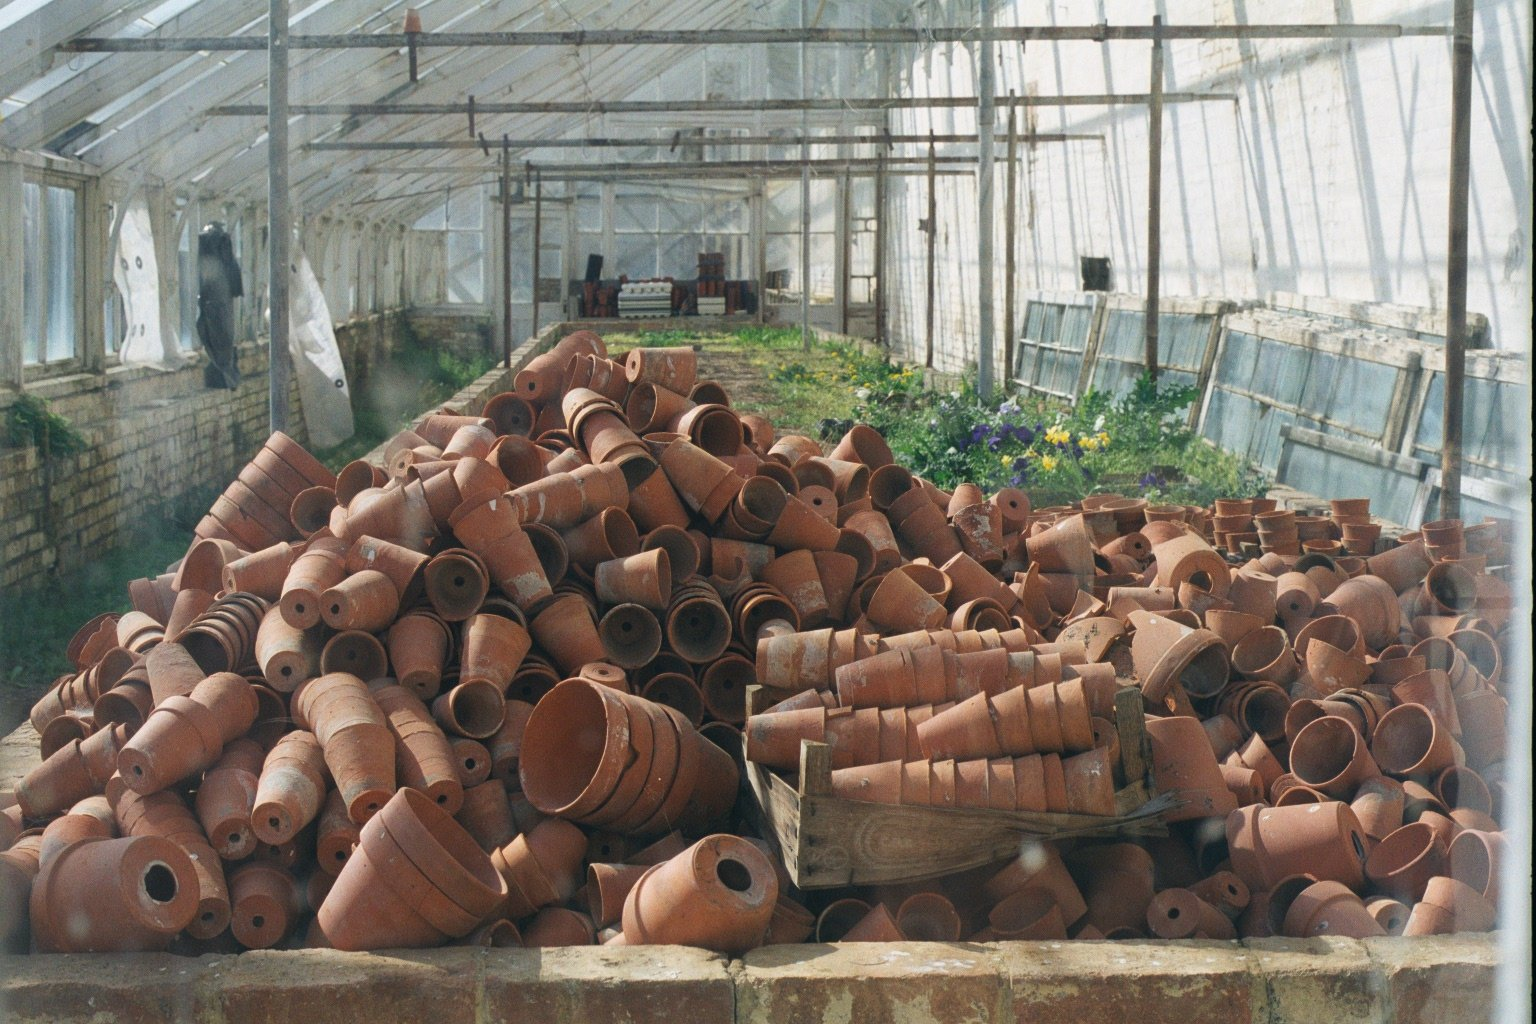 000319 Lots of Pots at North Mymms.JPG